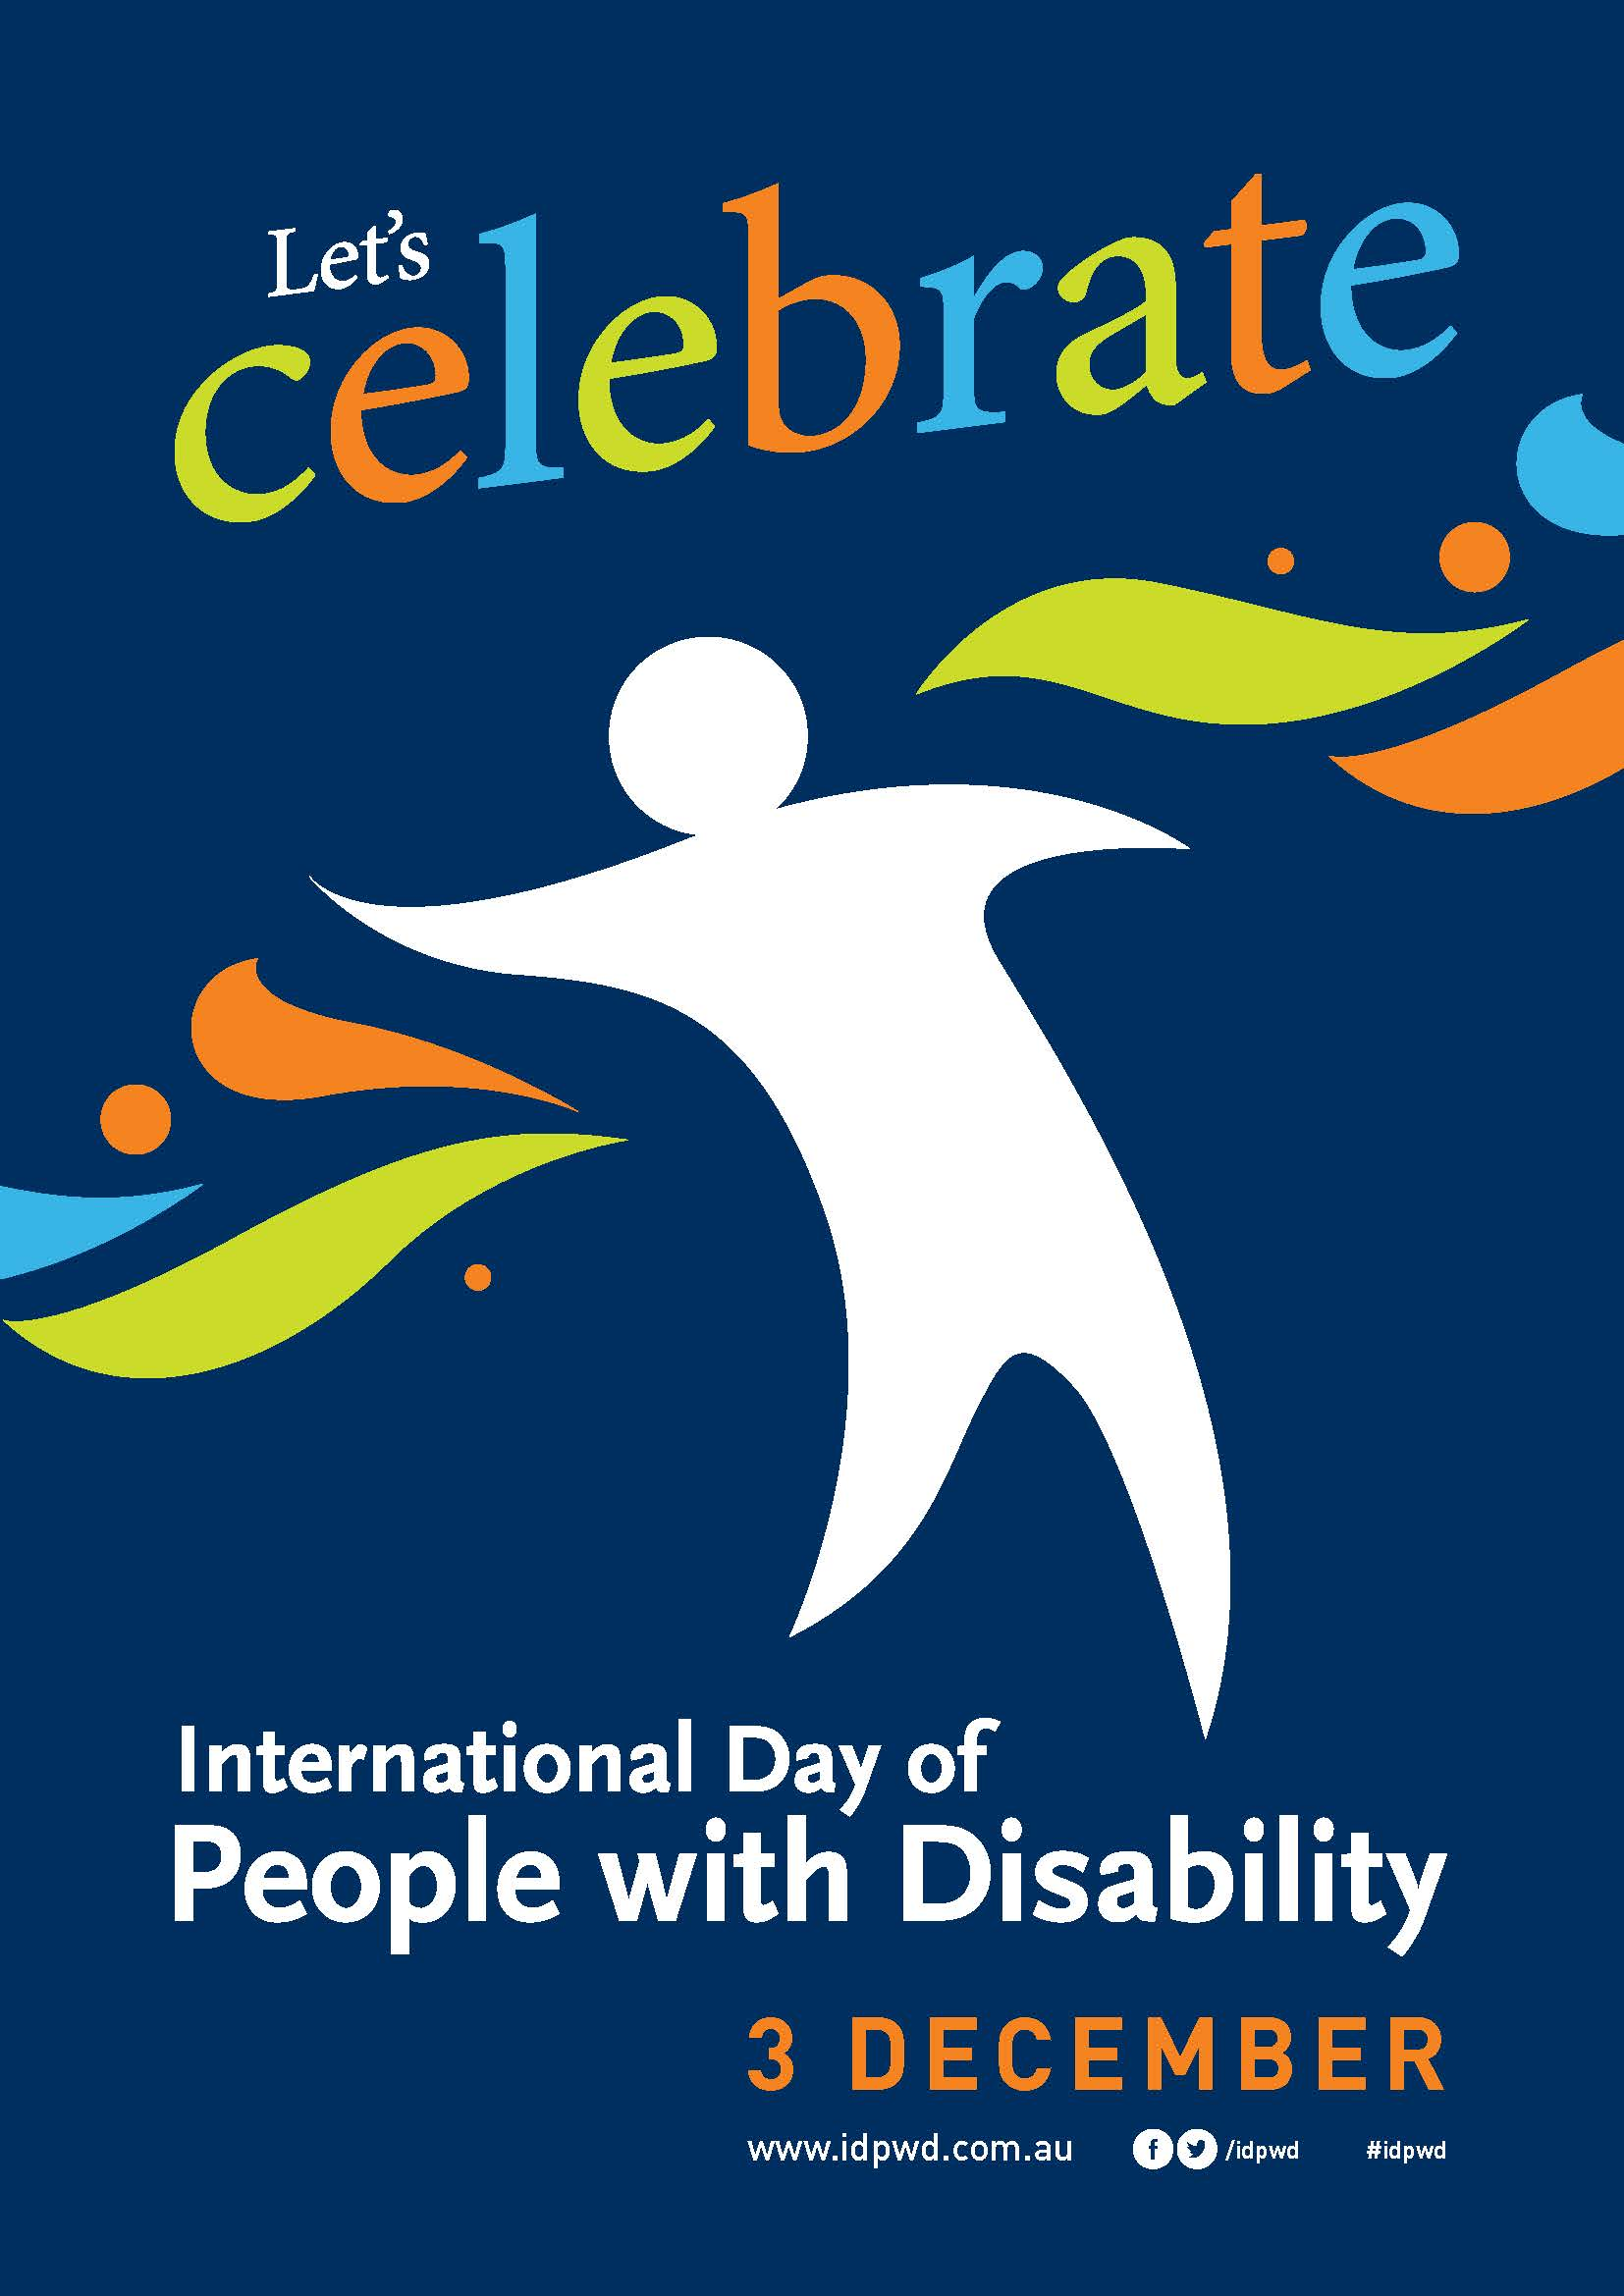 International Day of People with Disability (IDPwD) 2019